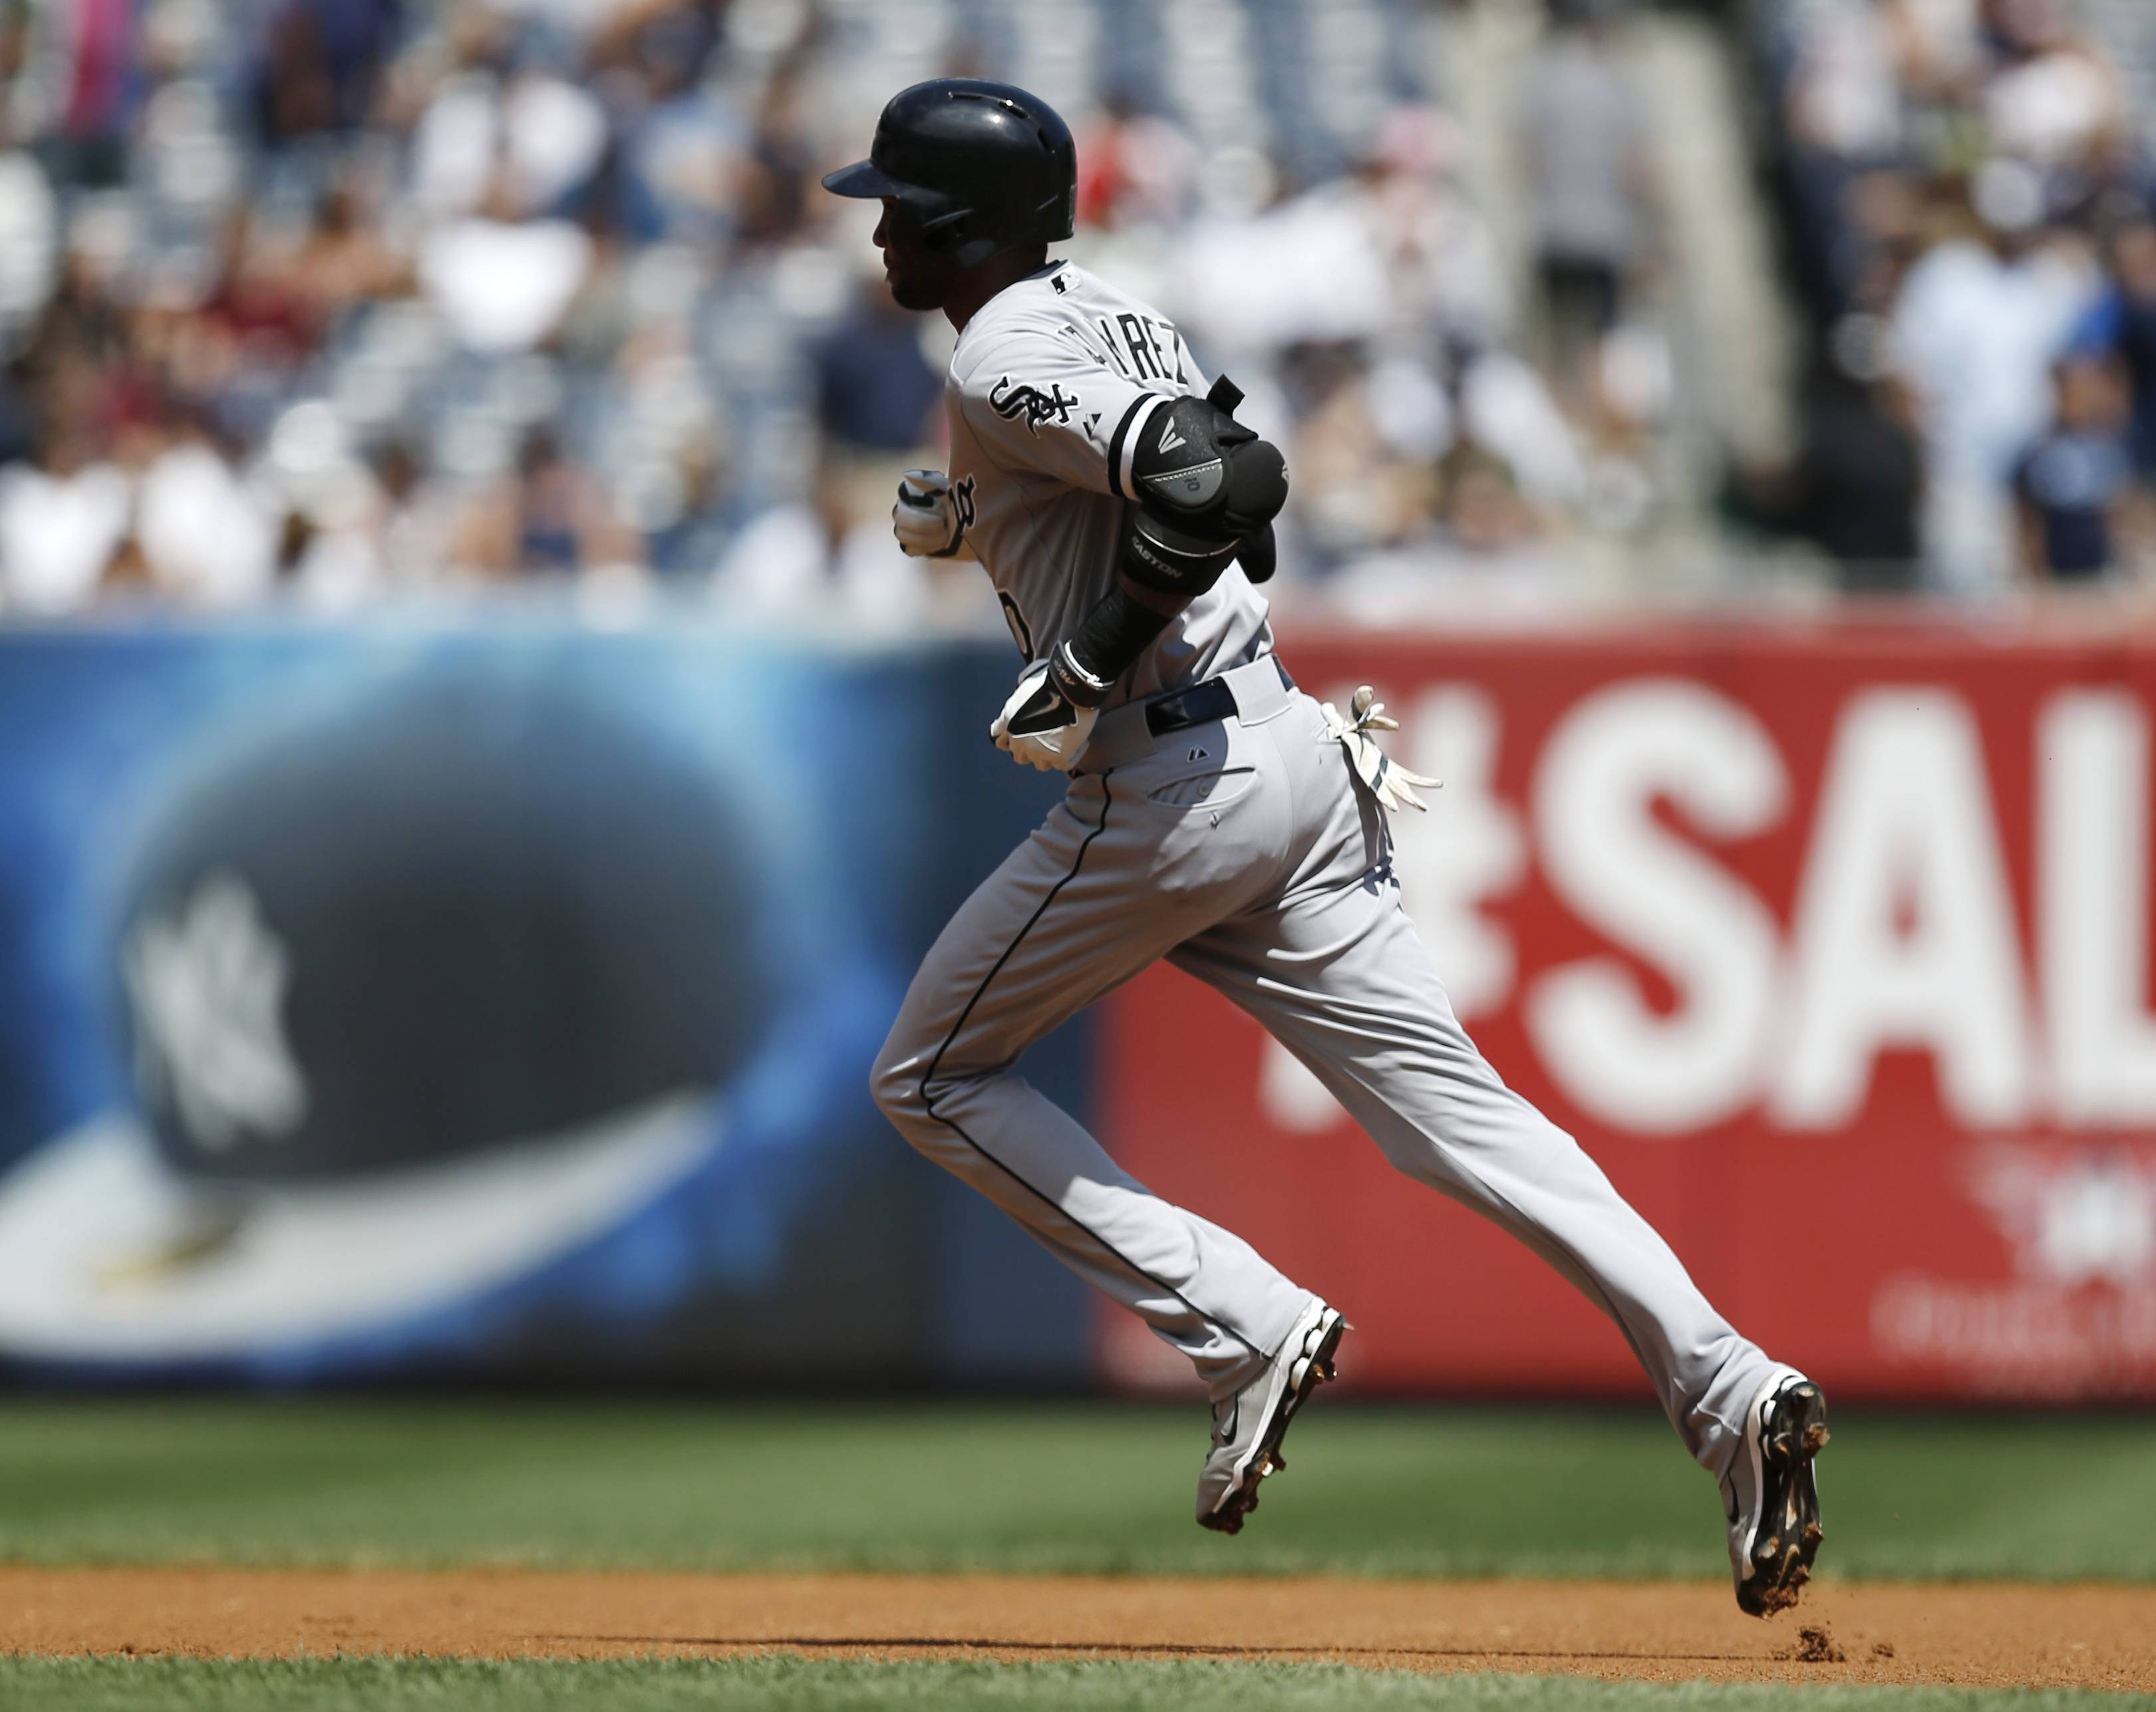 Chicago White Sox Alexei Ramirez (10) trots the bases after hitting a first-inning, solo home run in a baseball game against the New York Yankees at Yankee Stadium in New York.